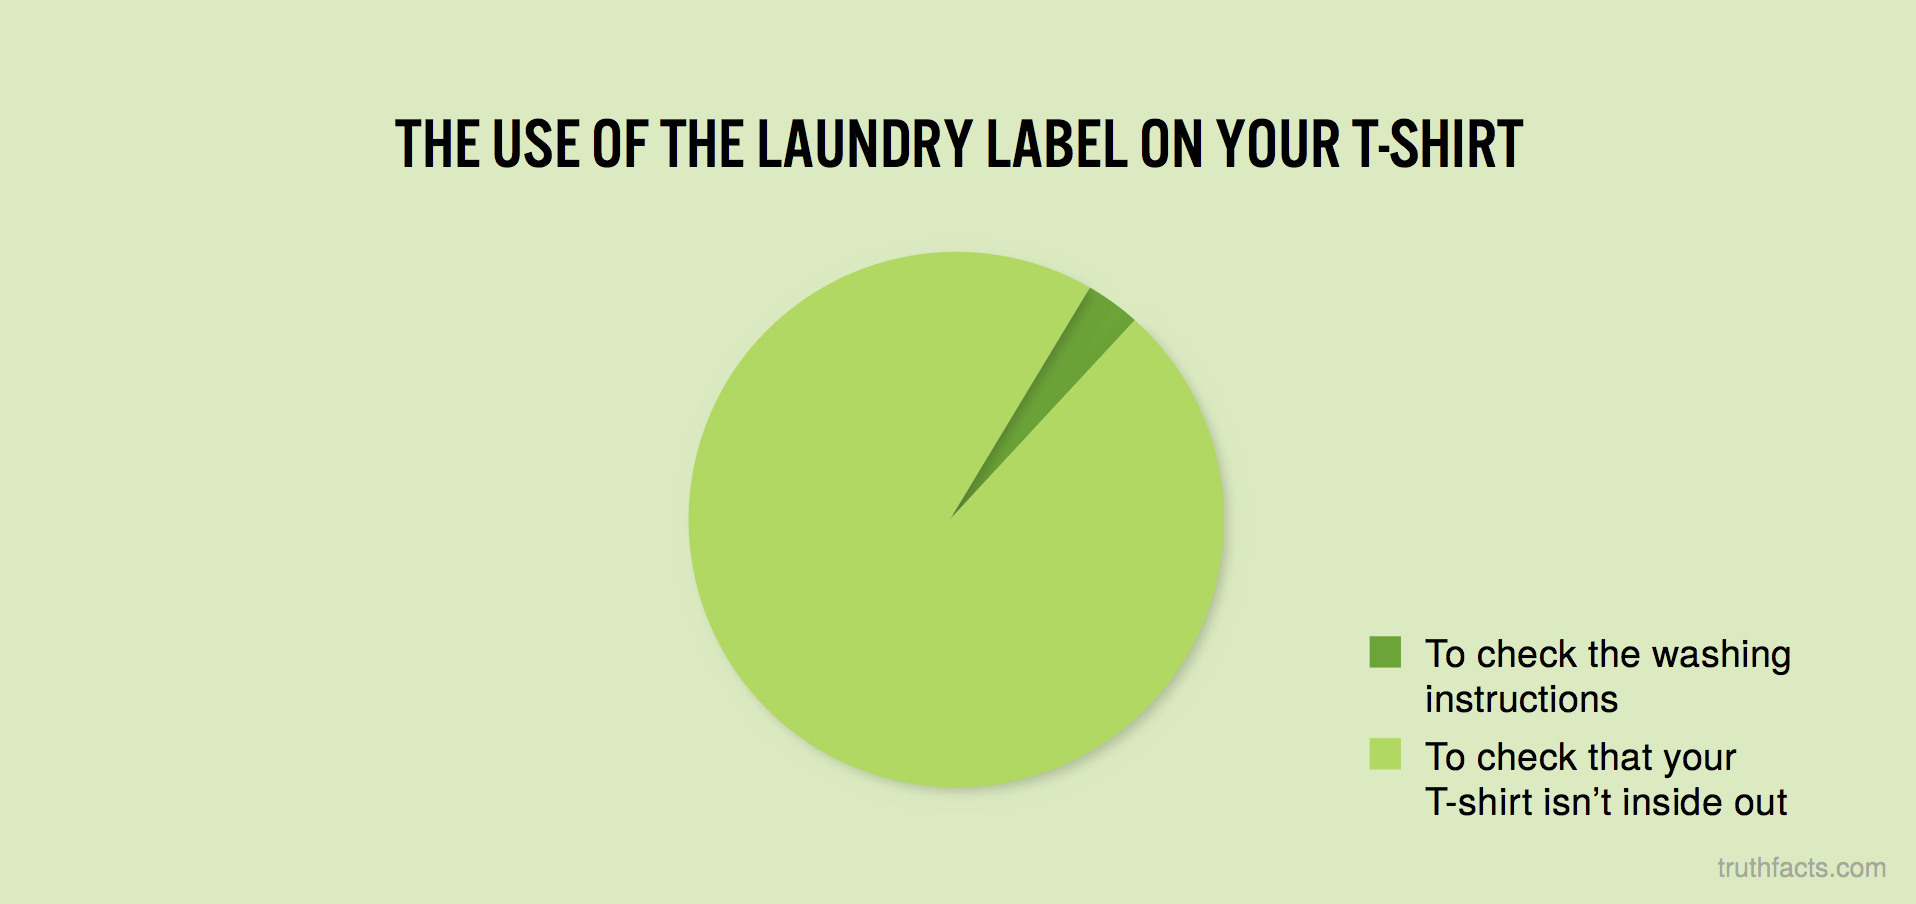 The use of the laundry label on your shirt